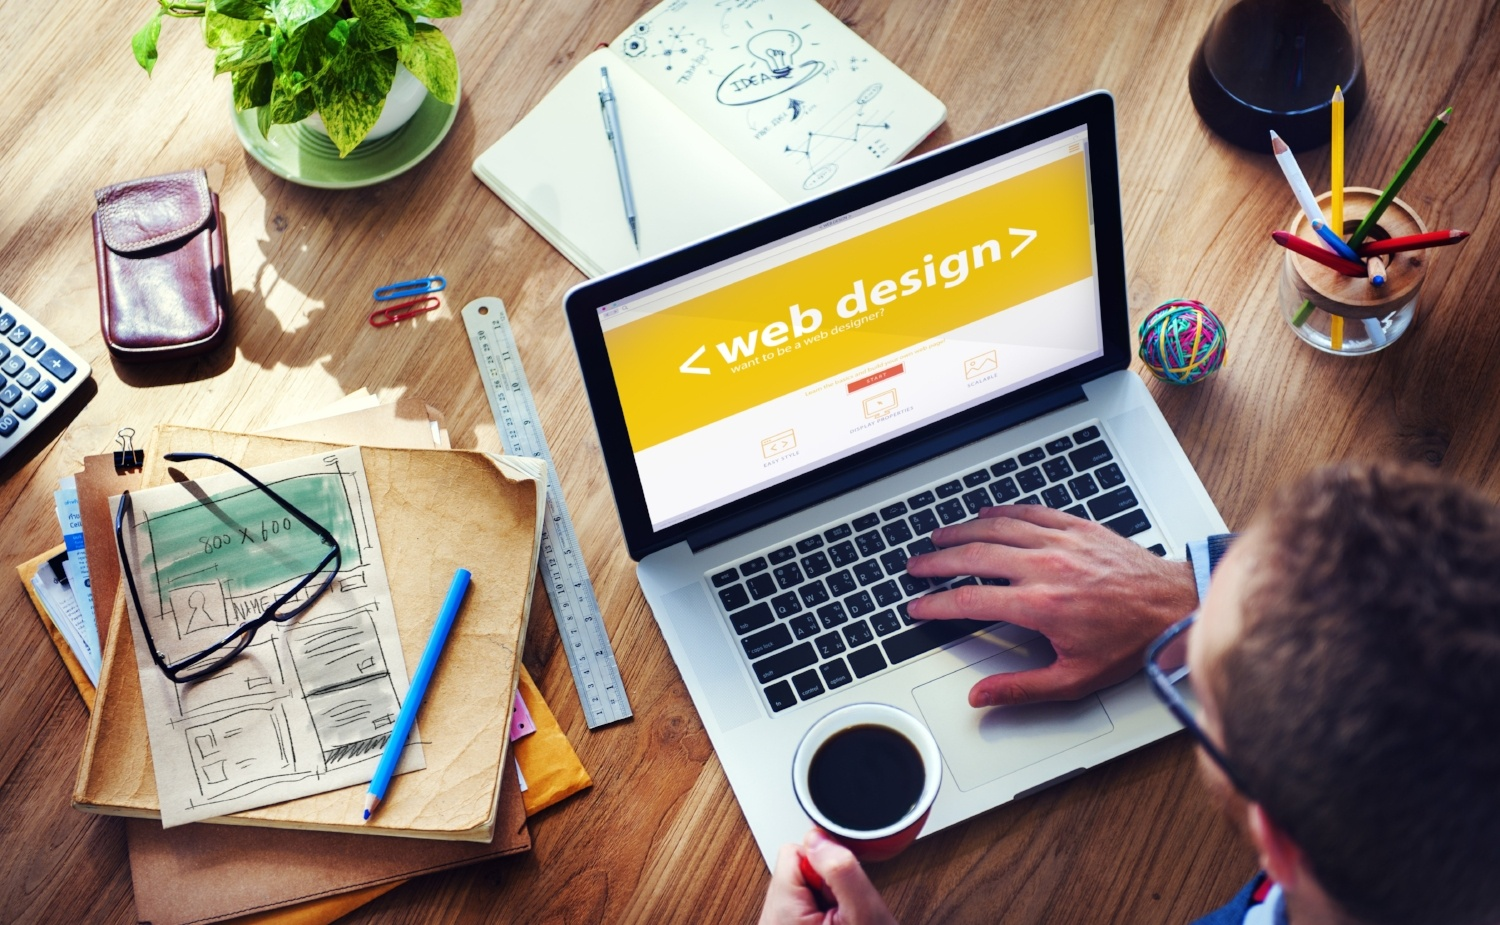 Designing an efficiently functioning website